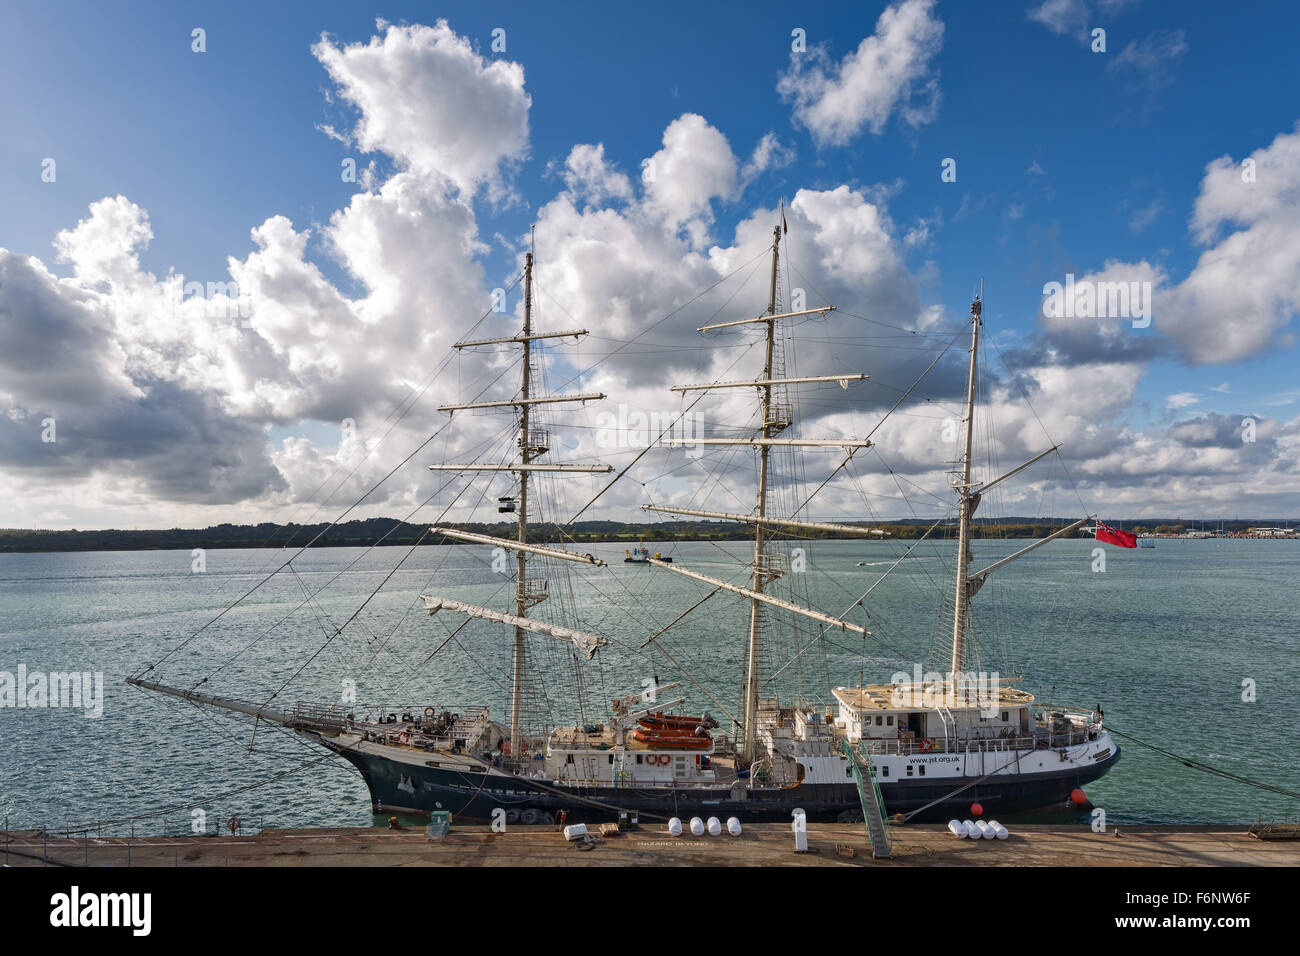 The Tenacious. A tall ship adapted for disabled people by the Jubilee Sailing Trust - Stock Image